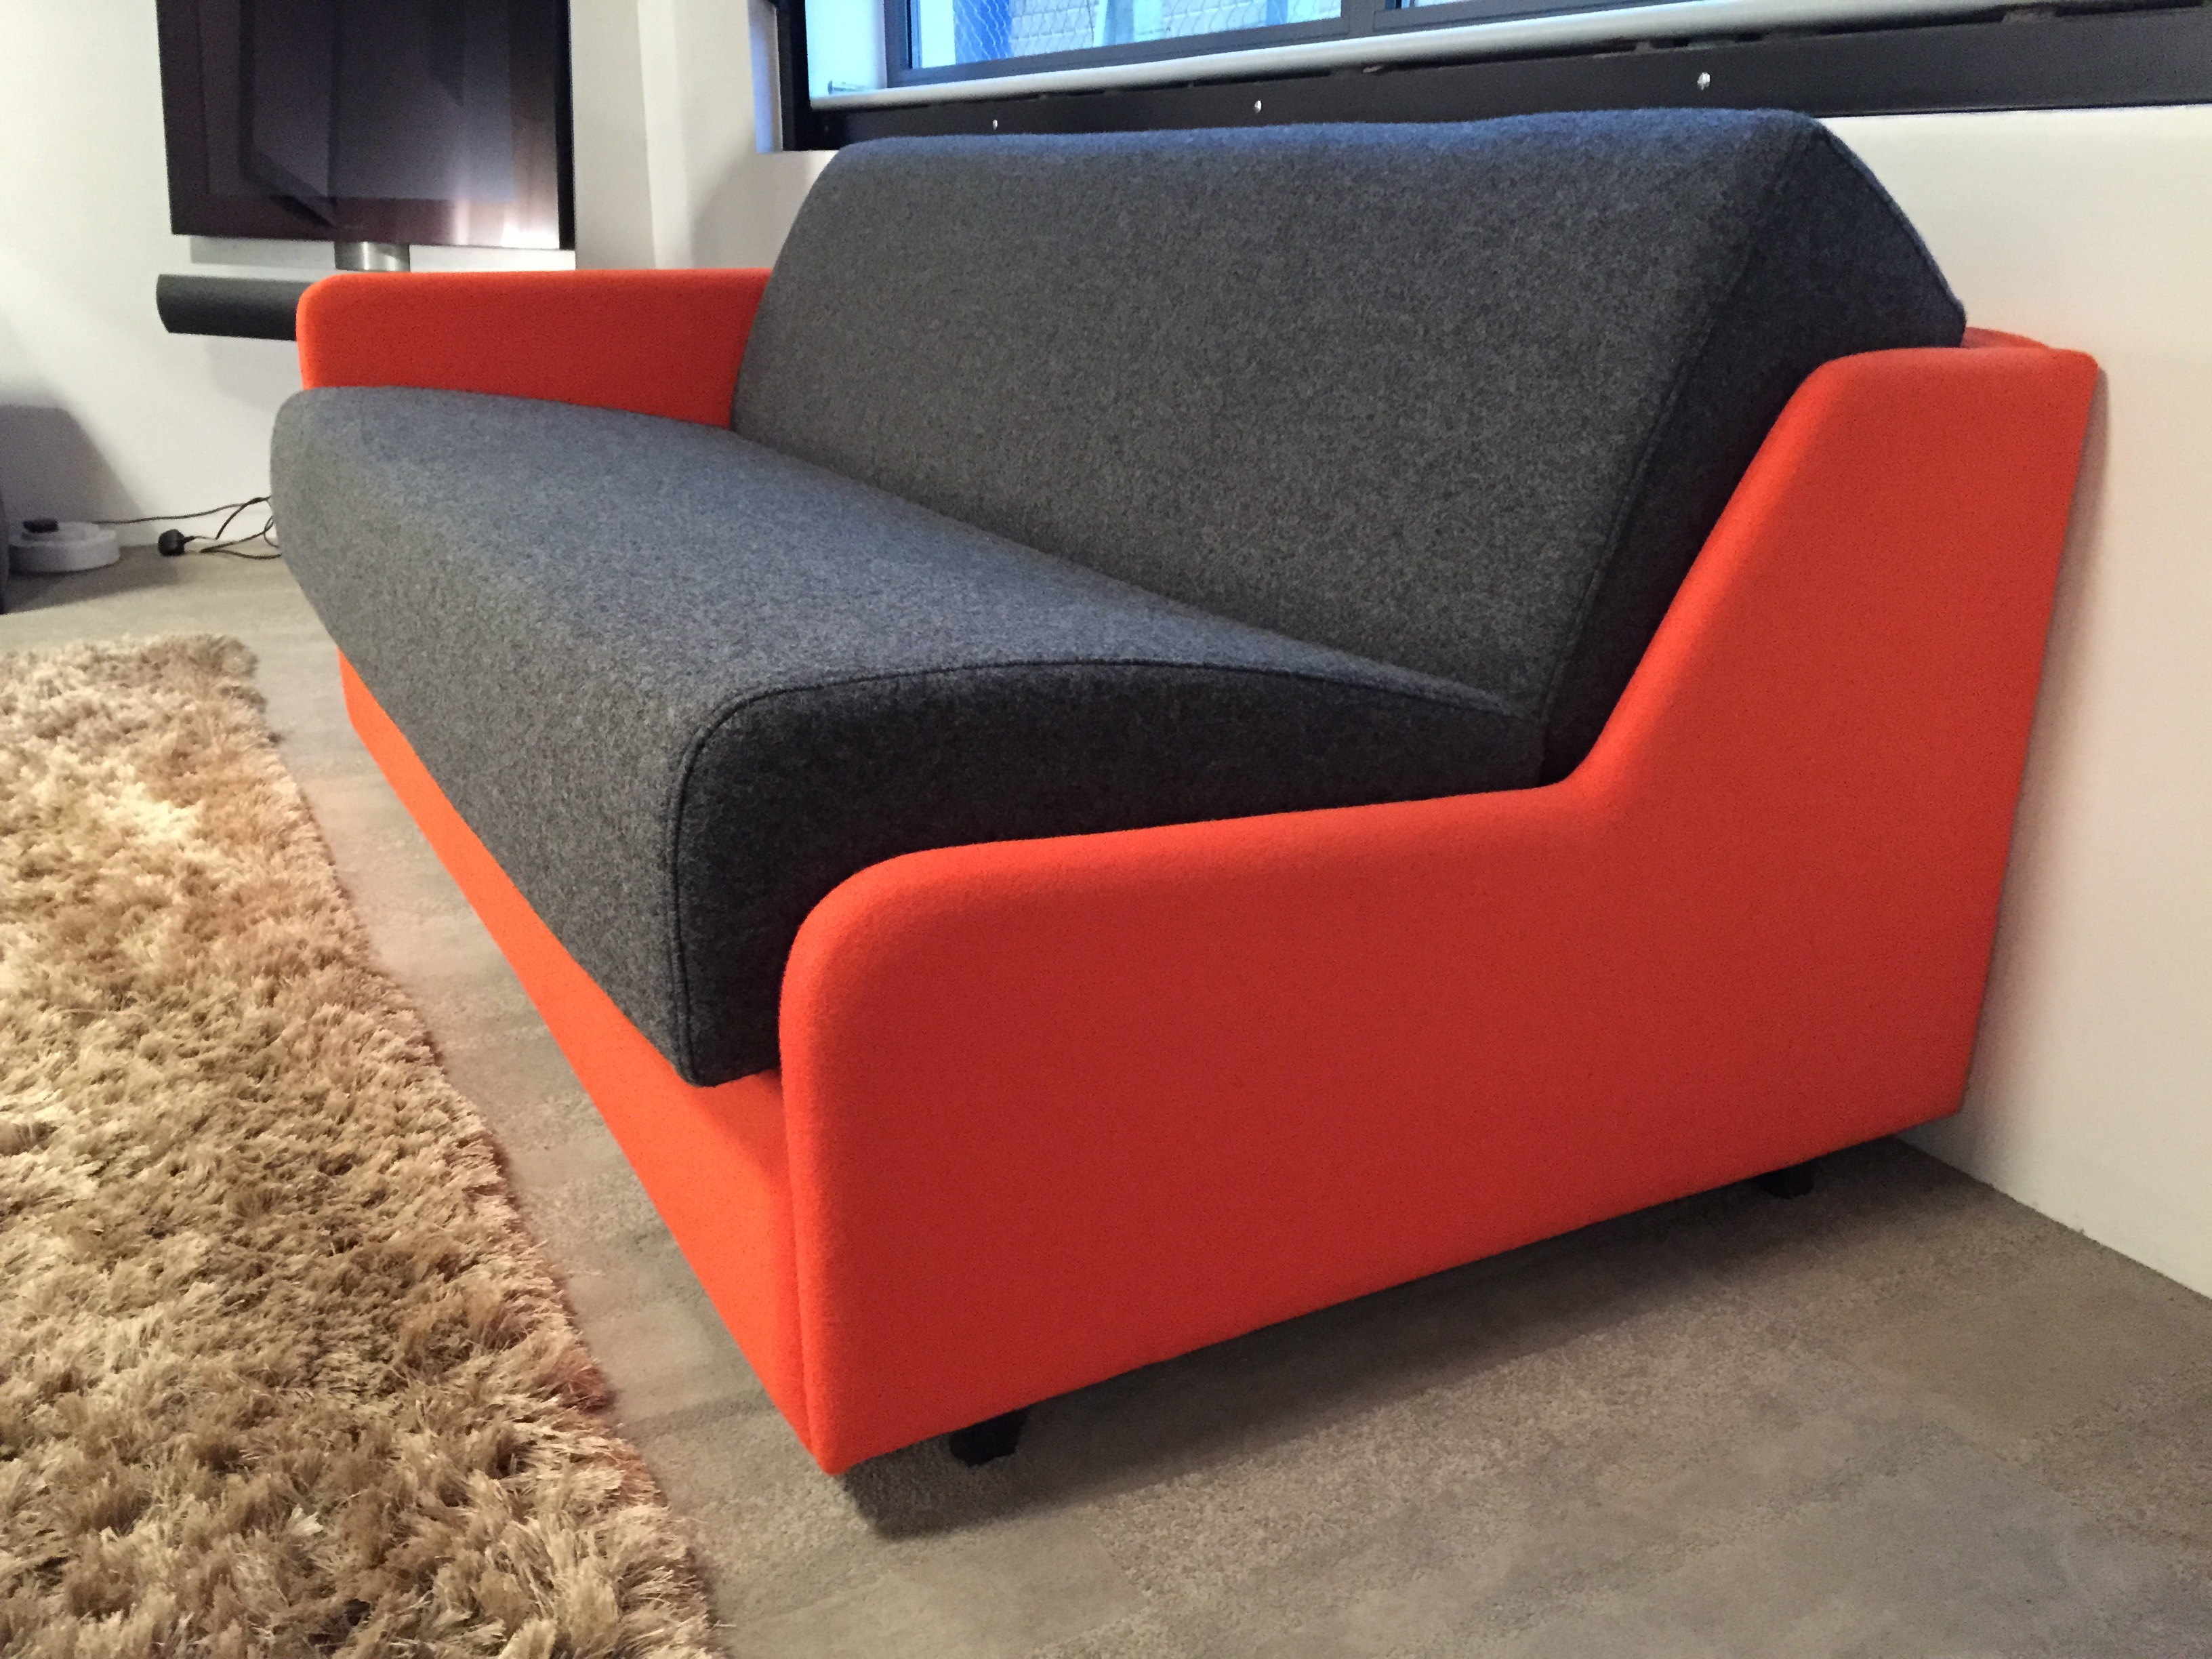 Slim sofa bed that is narrow pact and beautiful Furl Blog